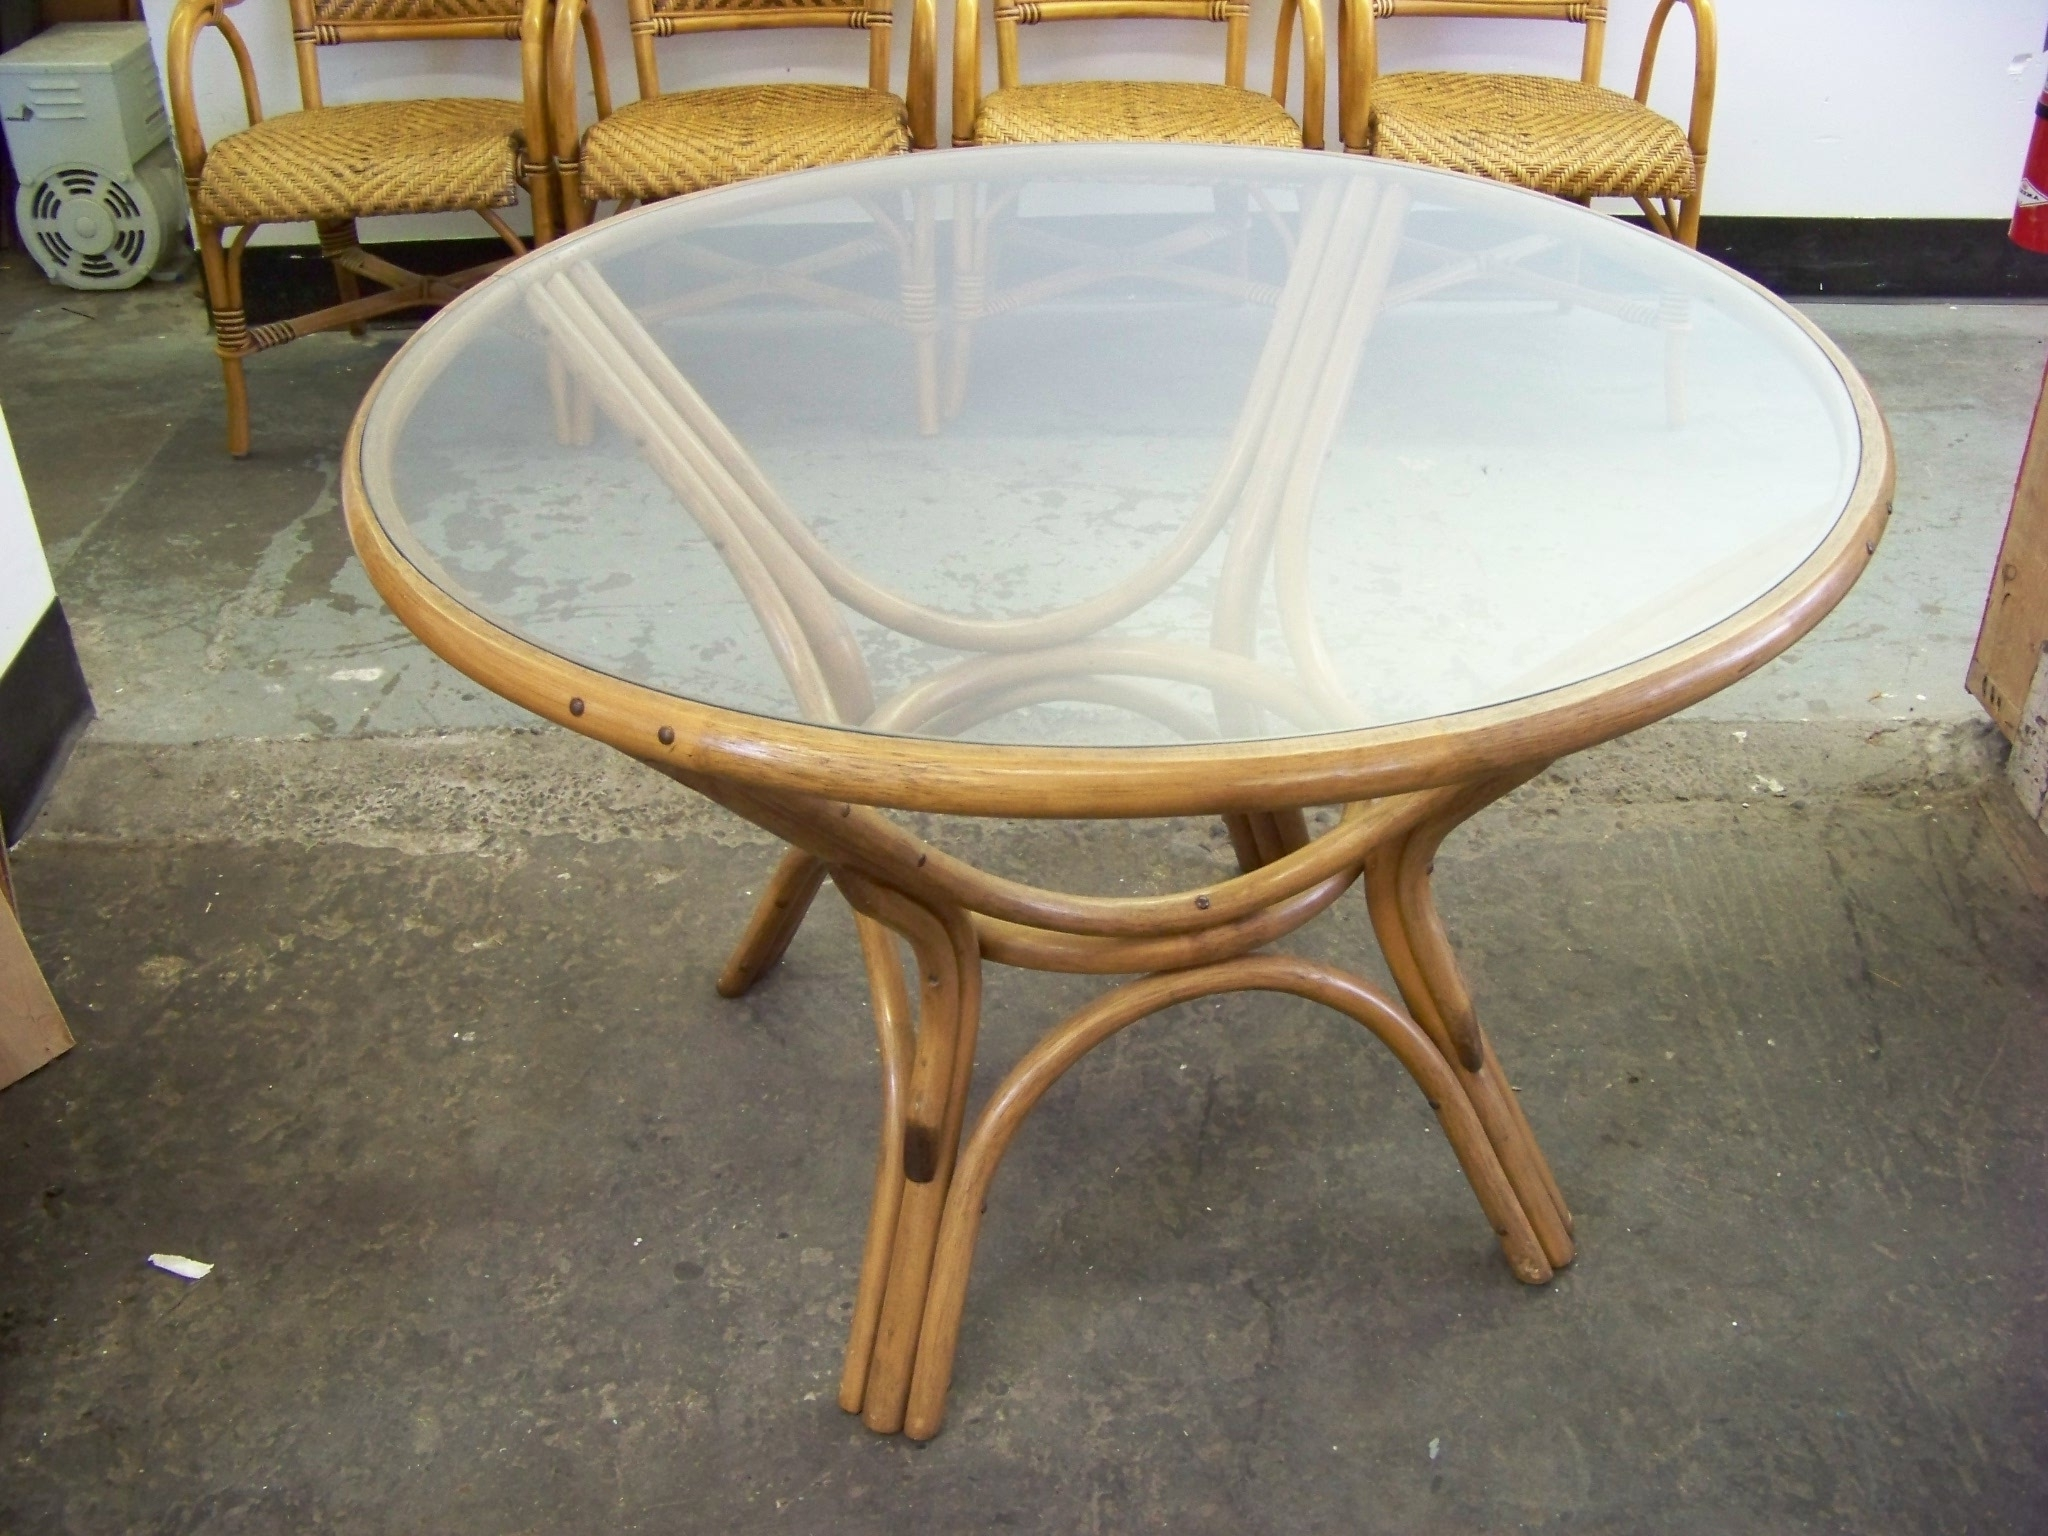 Outdoor Wicker Dining Table With Glass Top For 2018 Wicker And Glass Dining Tables (View 4 of 25)